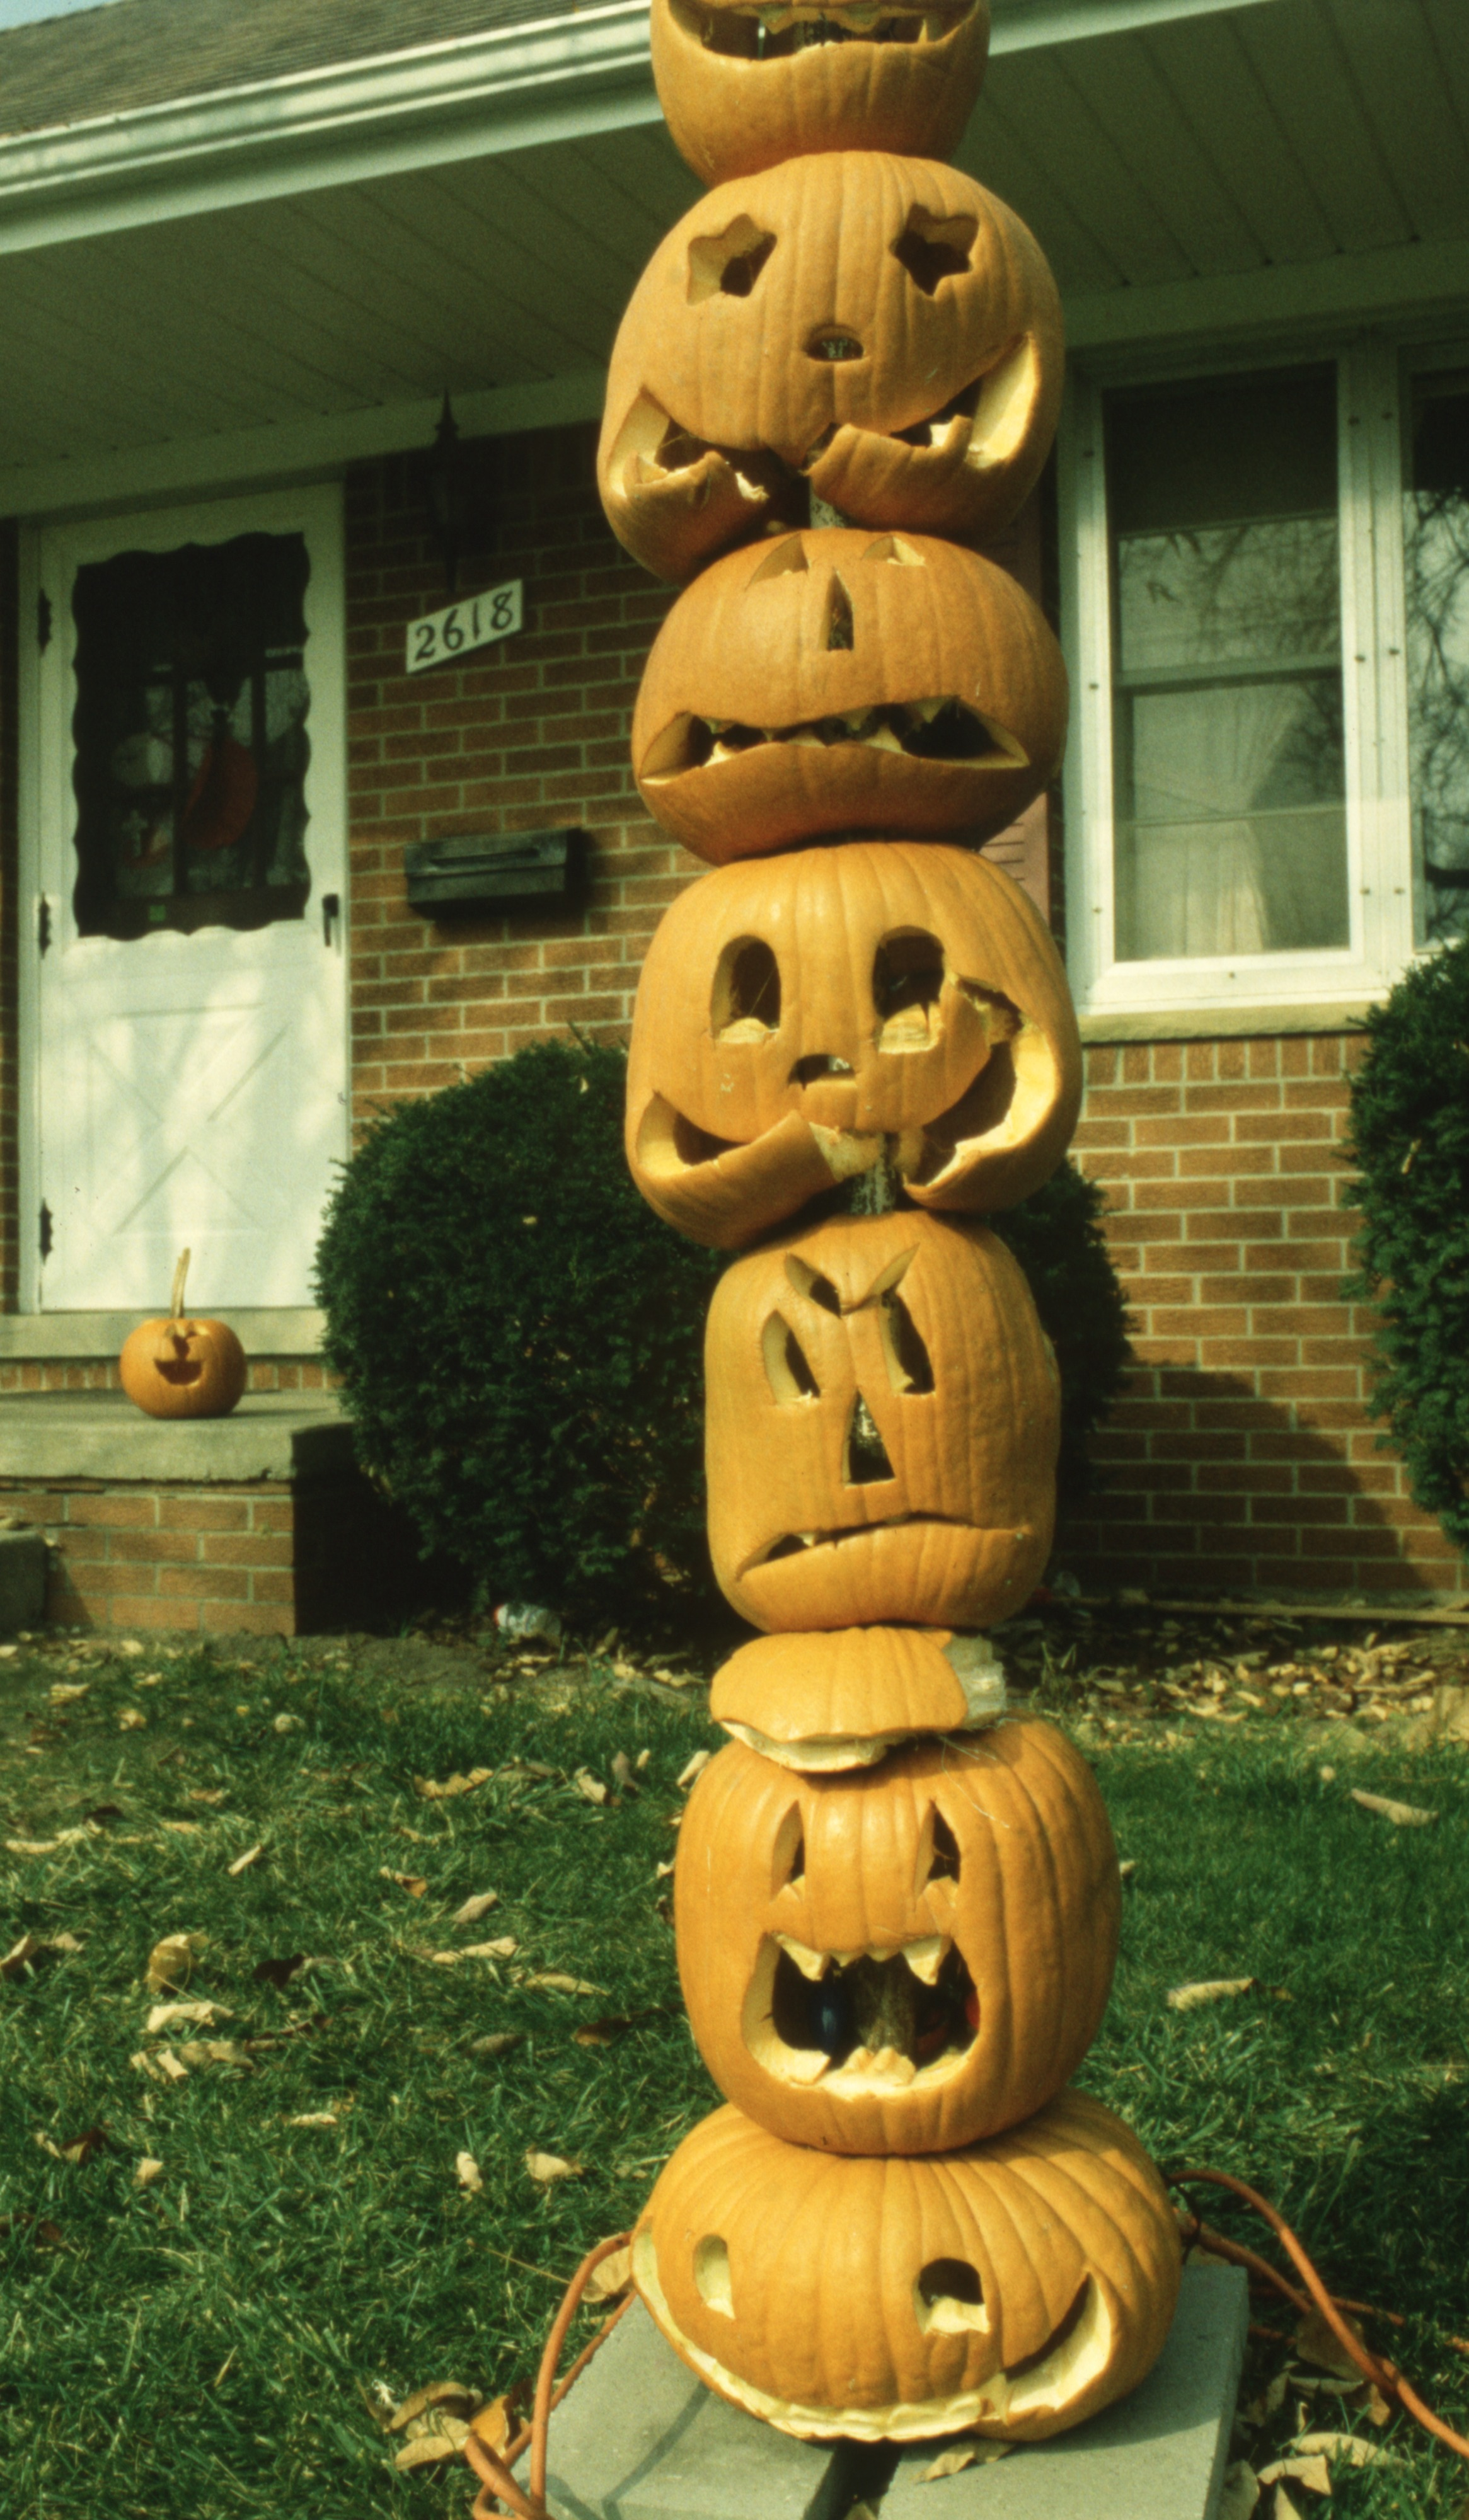 Totem Pole Of Pumpkins At 2618 Sequoia, October 1991 image